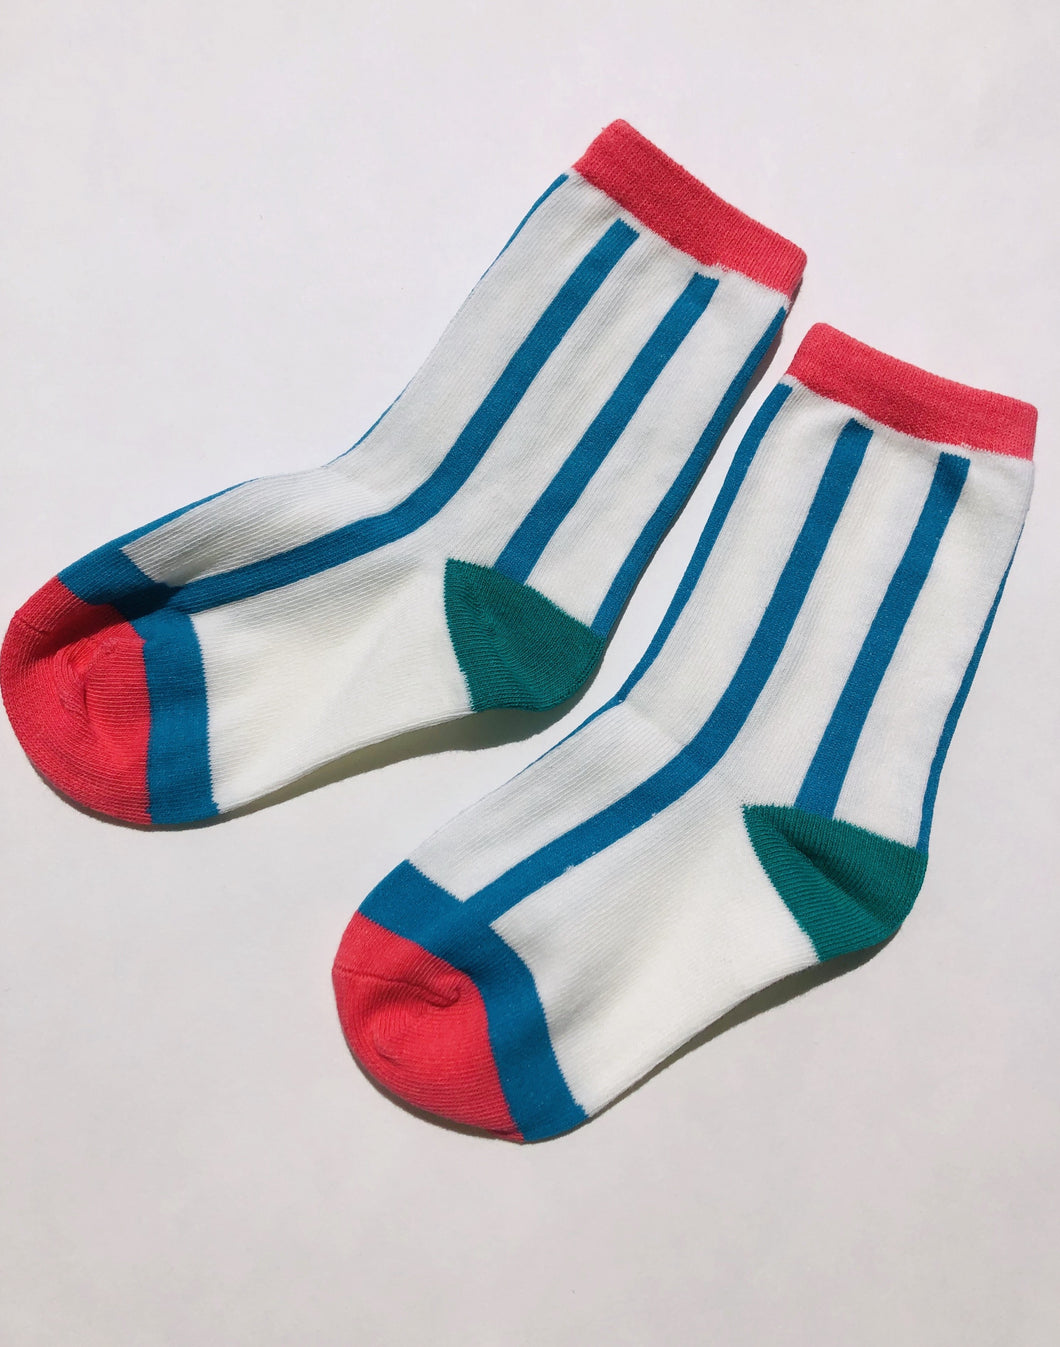 Short white with blue stripes sock